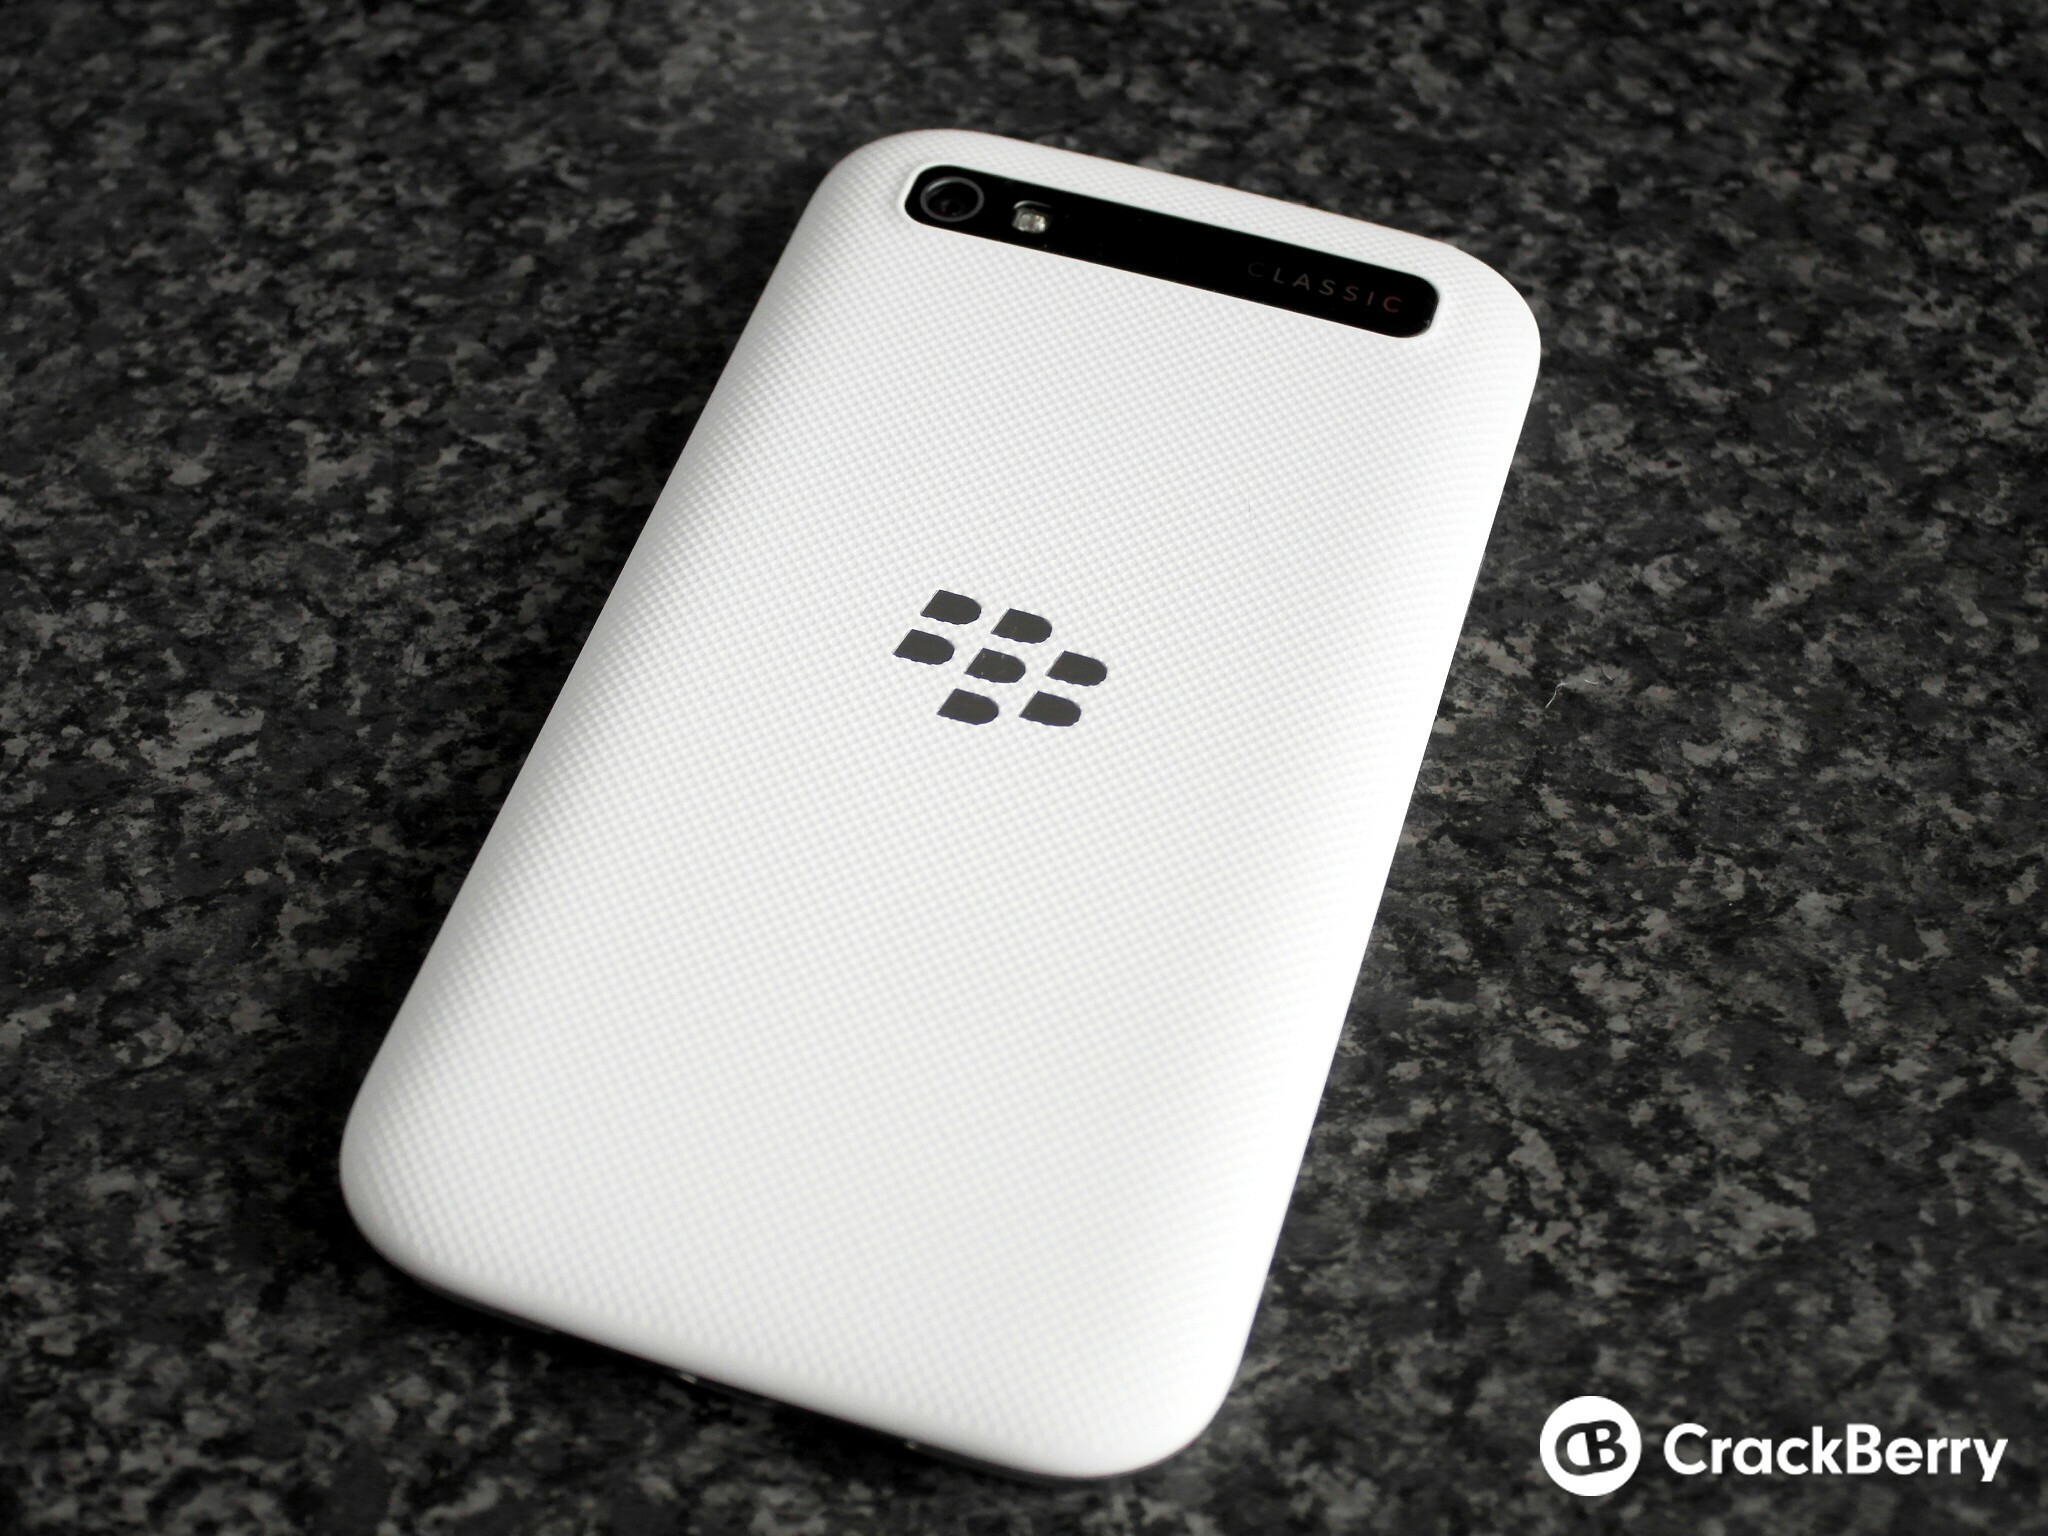 BlackBerry Classic White back view